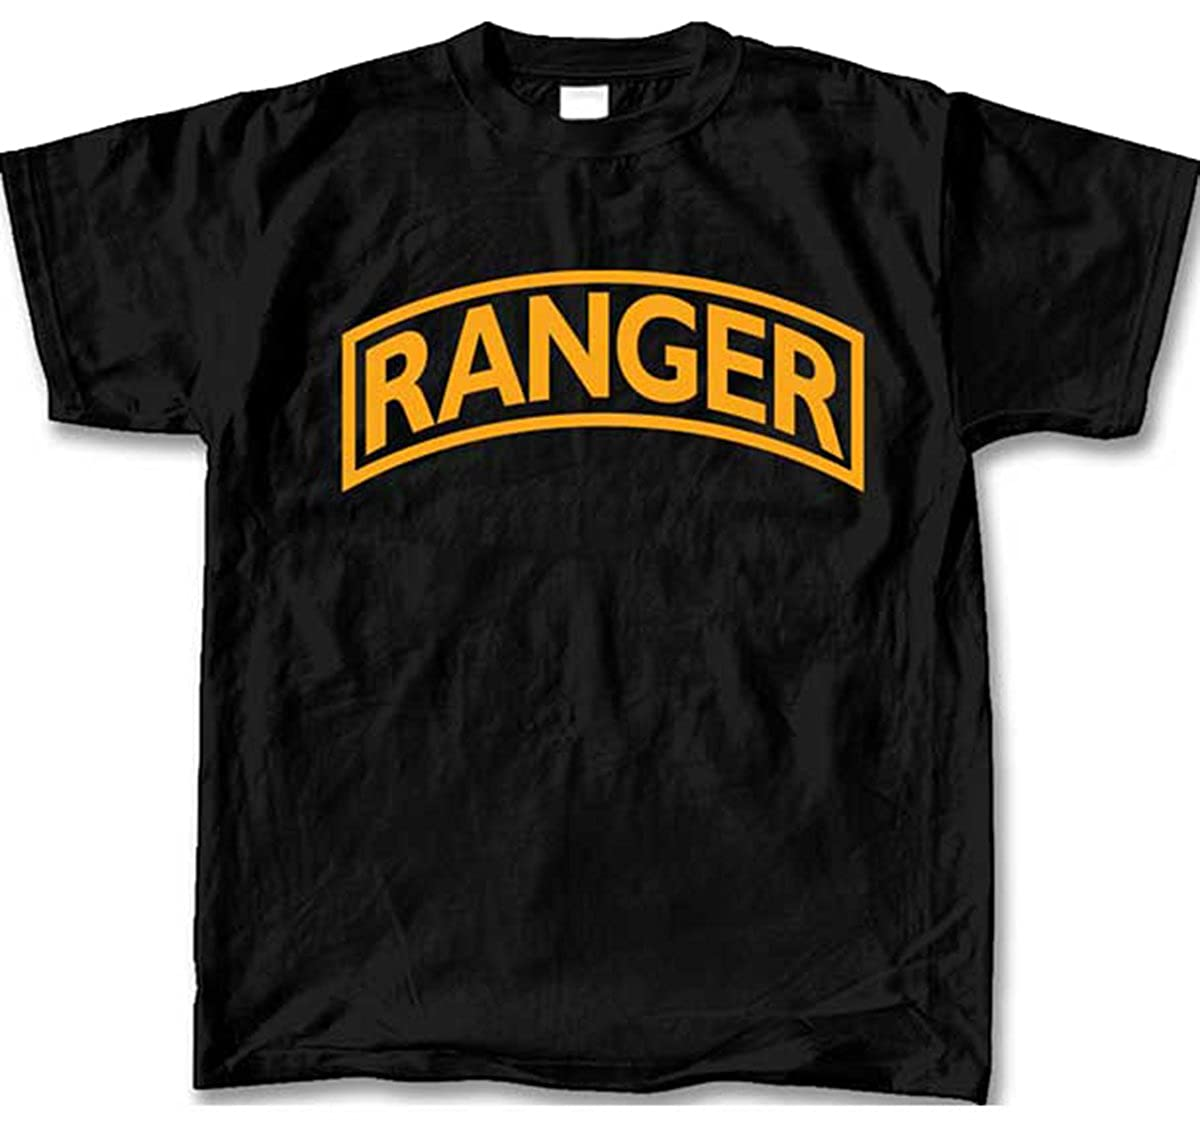 United States Army Ranger Mens Ss T Shirt Black Amazon Com